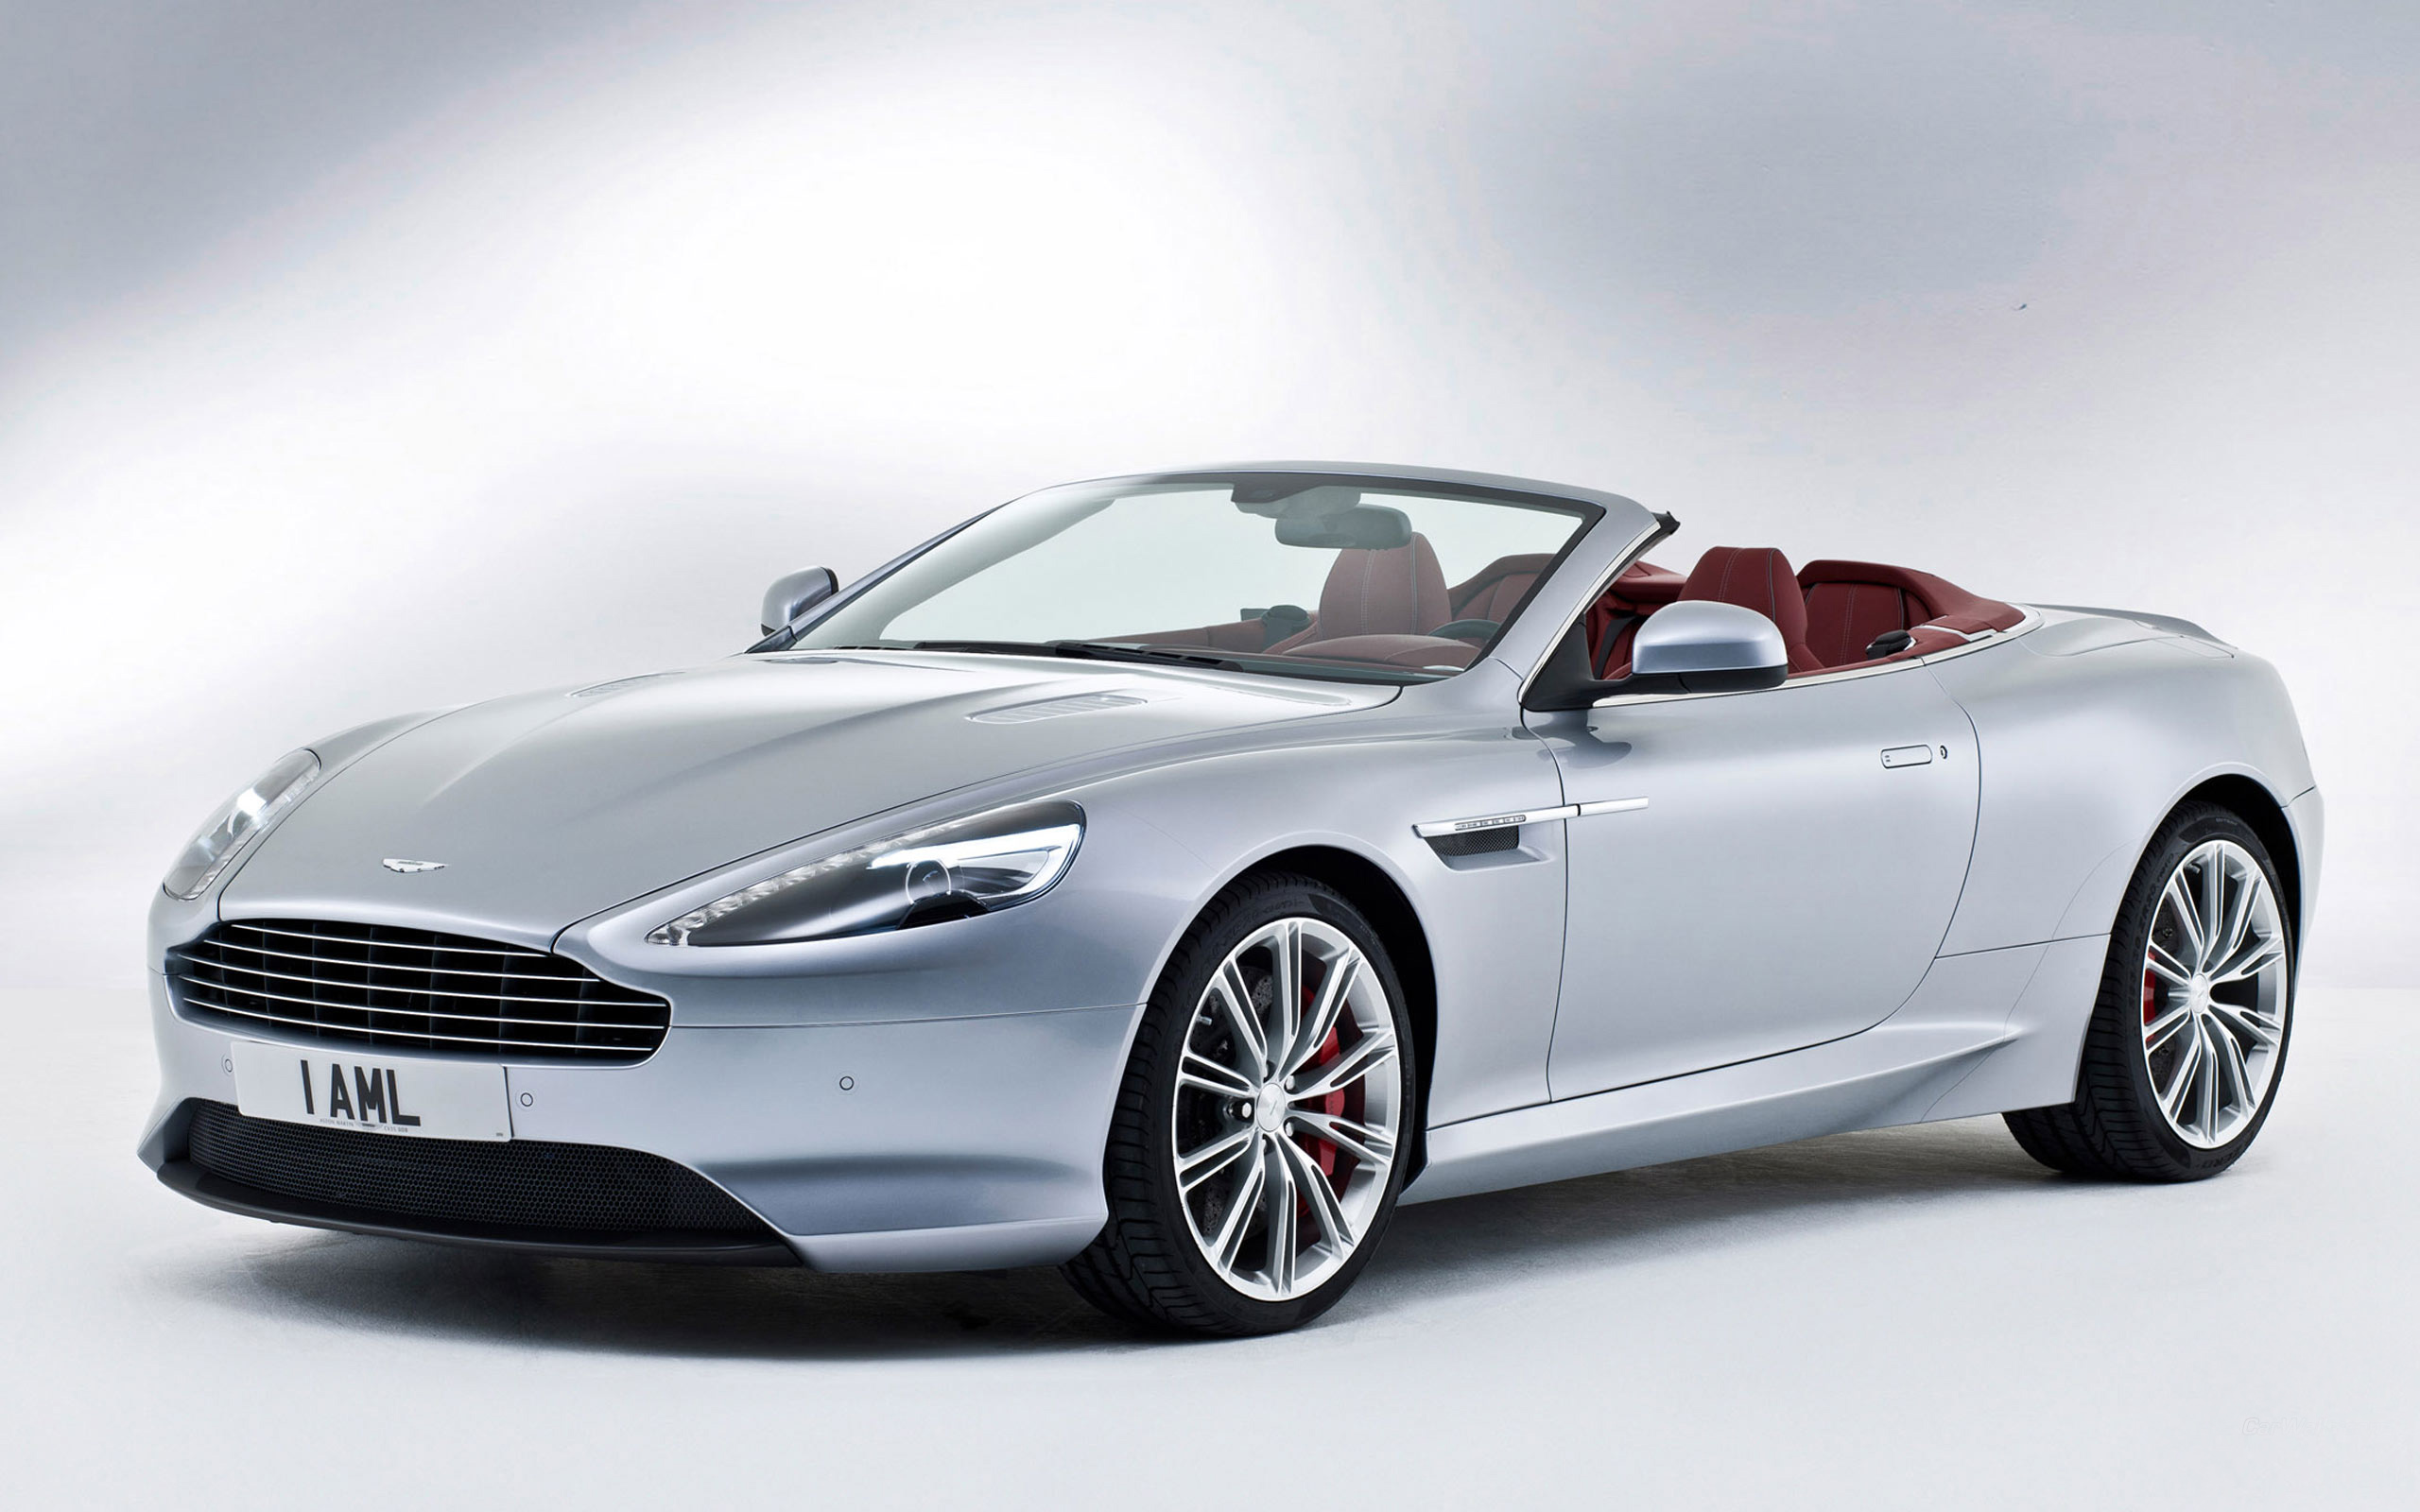 aston martin db9 coupe 2009 images #11